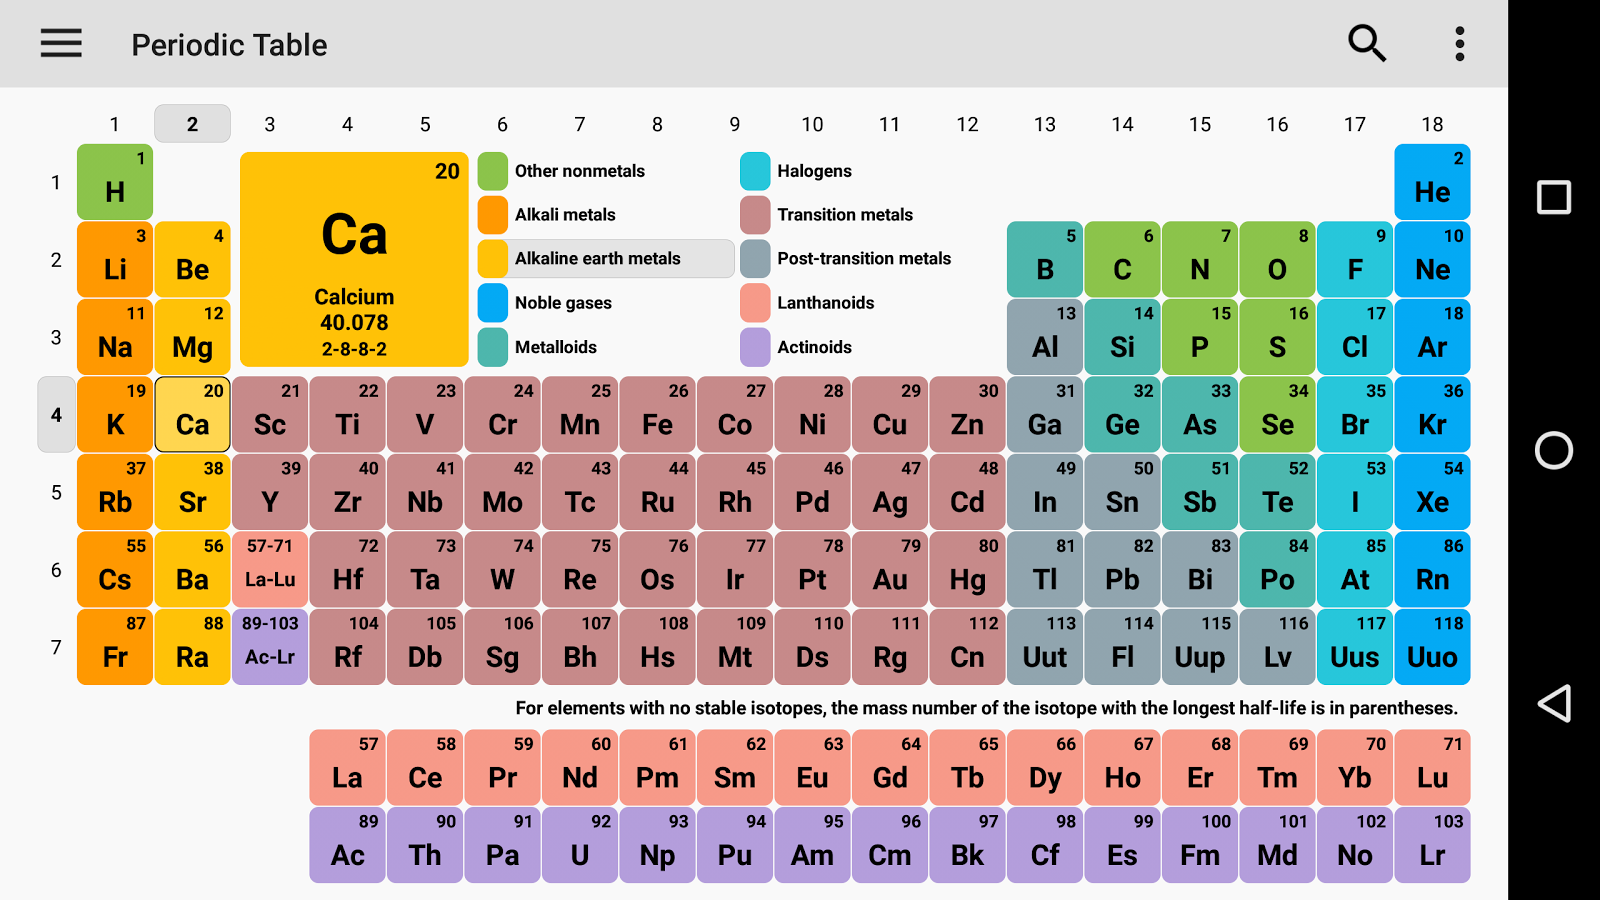 periodic table android app - uplabs